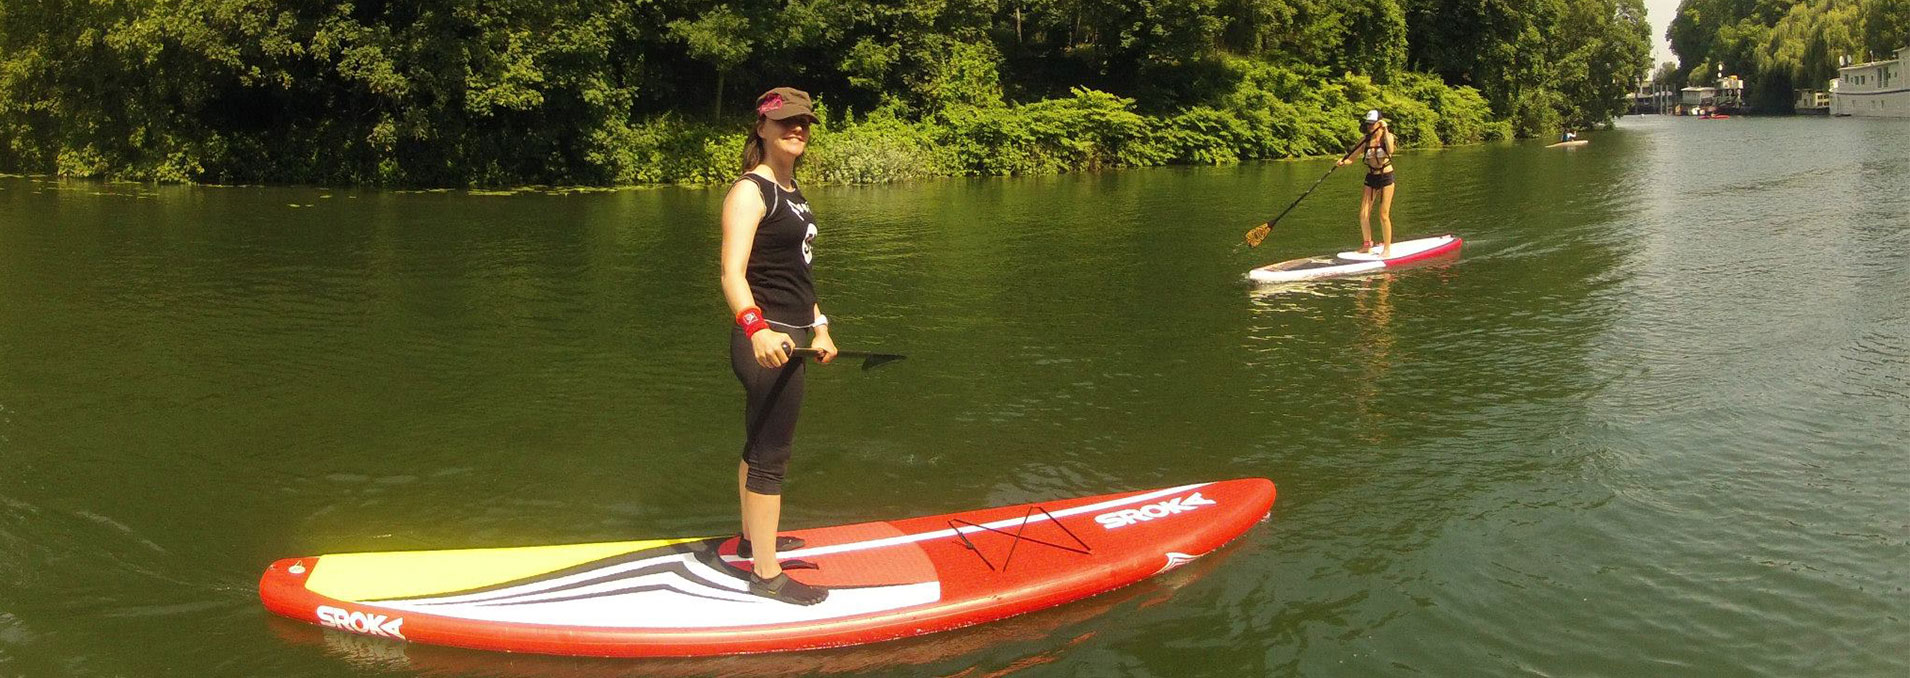 Stand up Paddle loisir